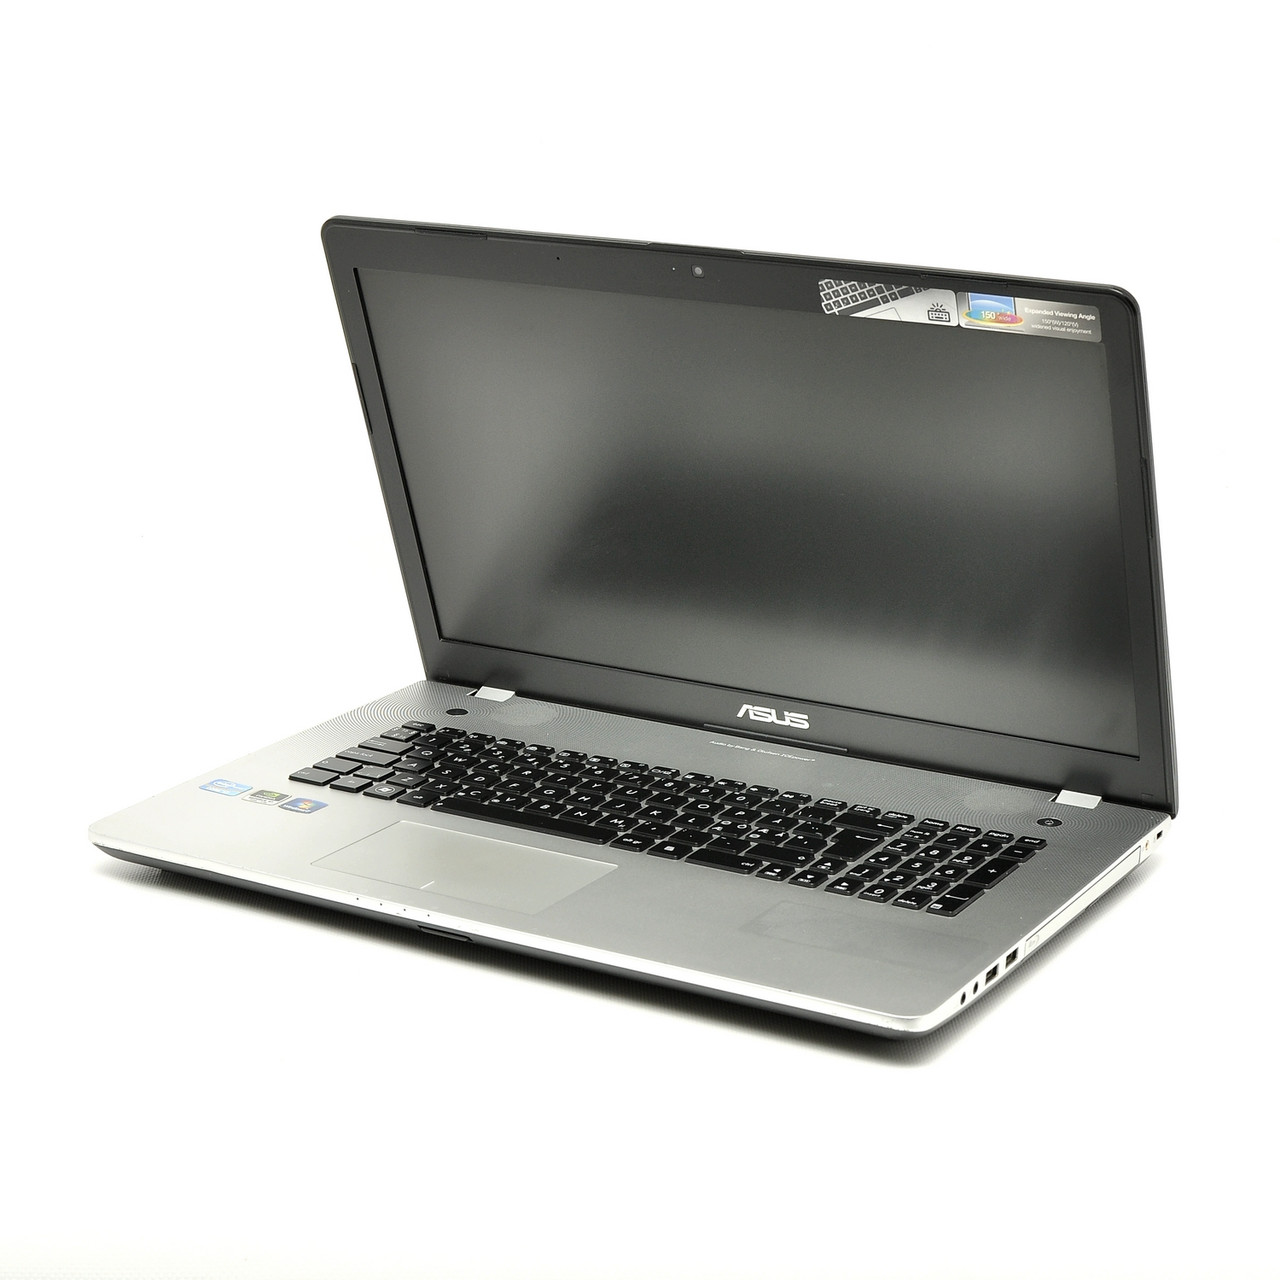 "Б/У Ноутбук Asus n76v / 17.3"" / Intel Core i7-3610QM / 16 RAM / 240 SSD / Intel HD 4000/GeForce 650M"